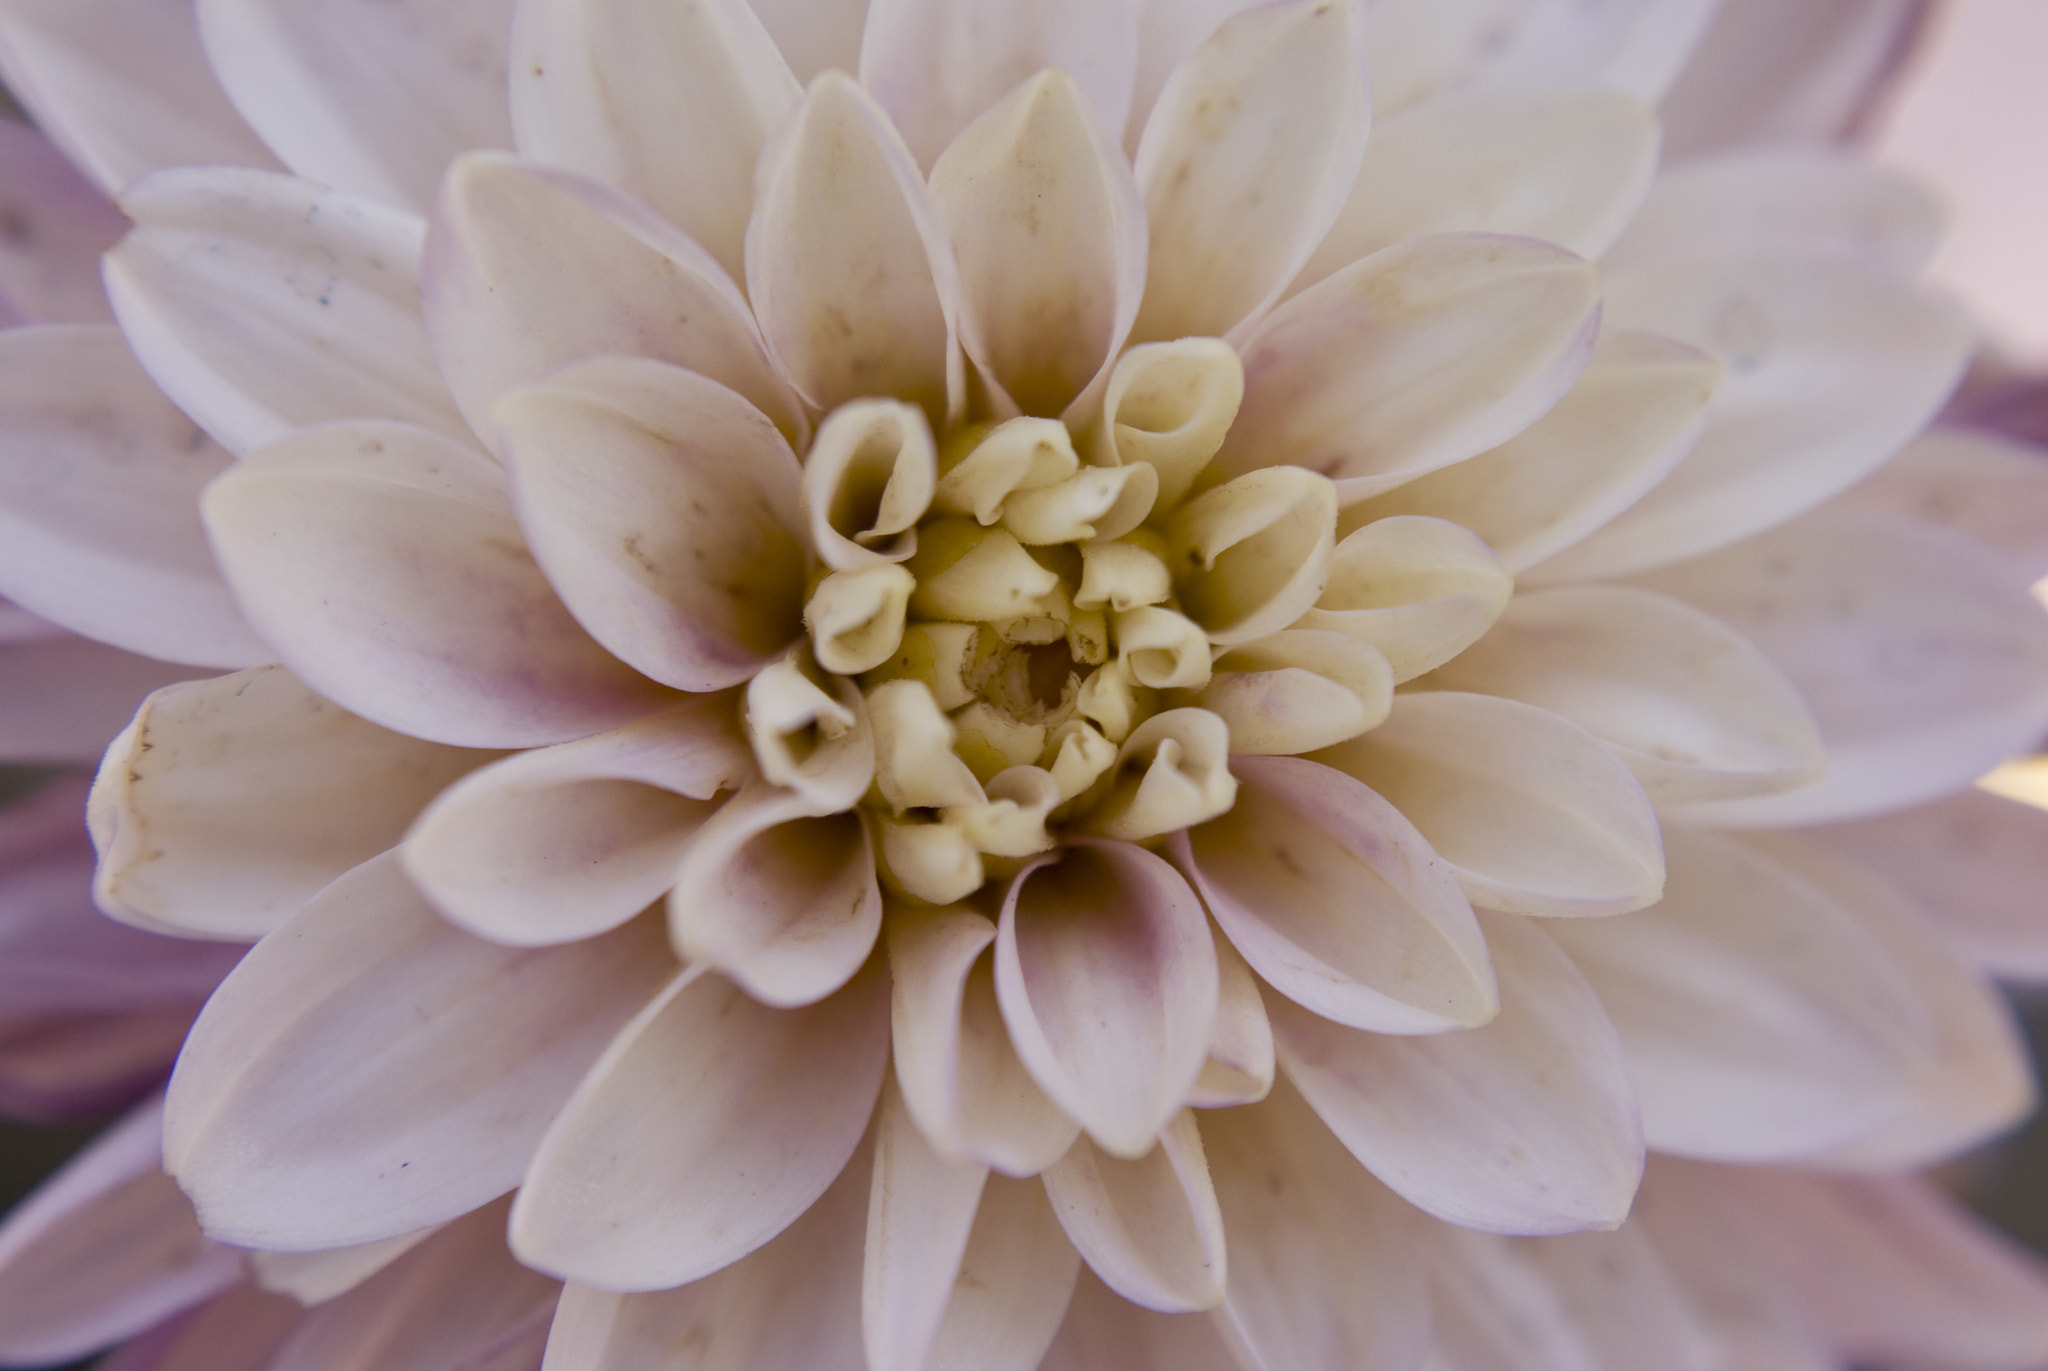 Photograph Alyssa's Flower by Michael Anthony Cantone on 500px